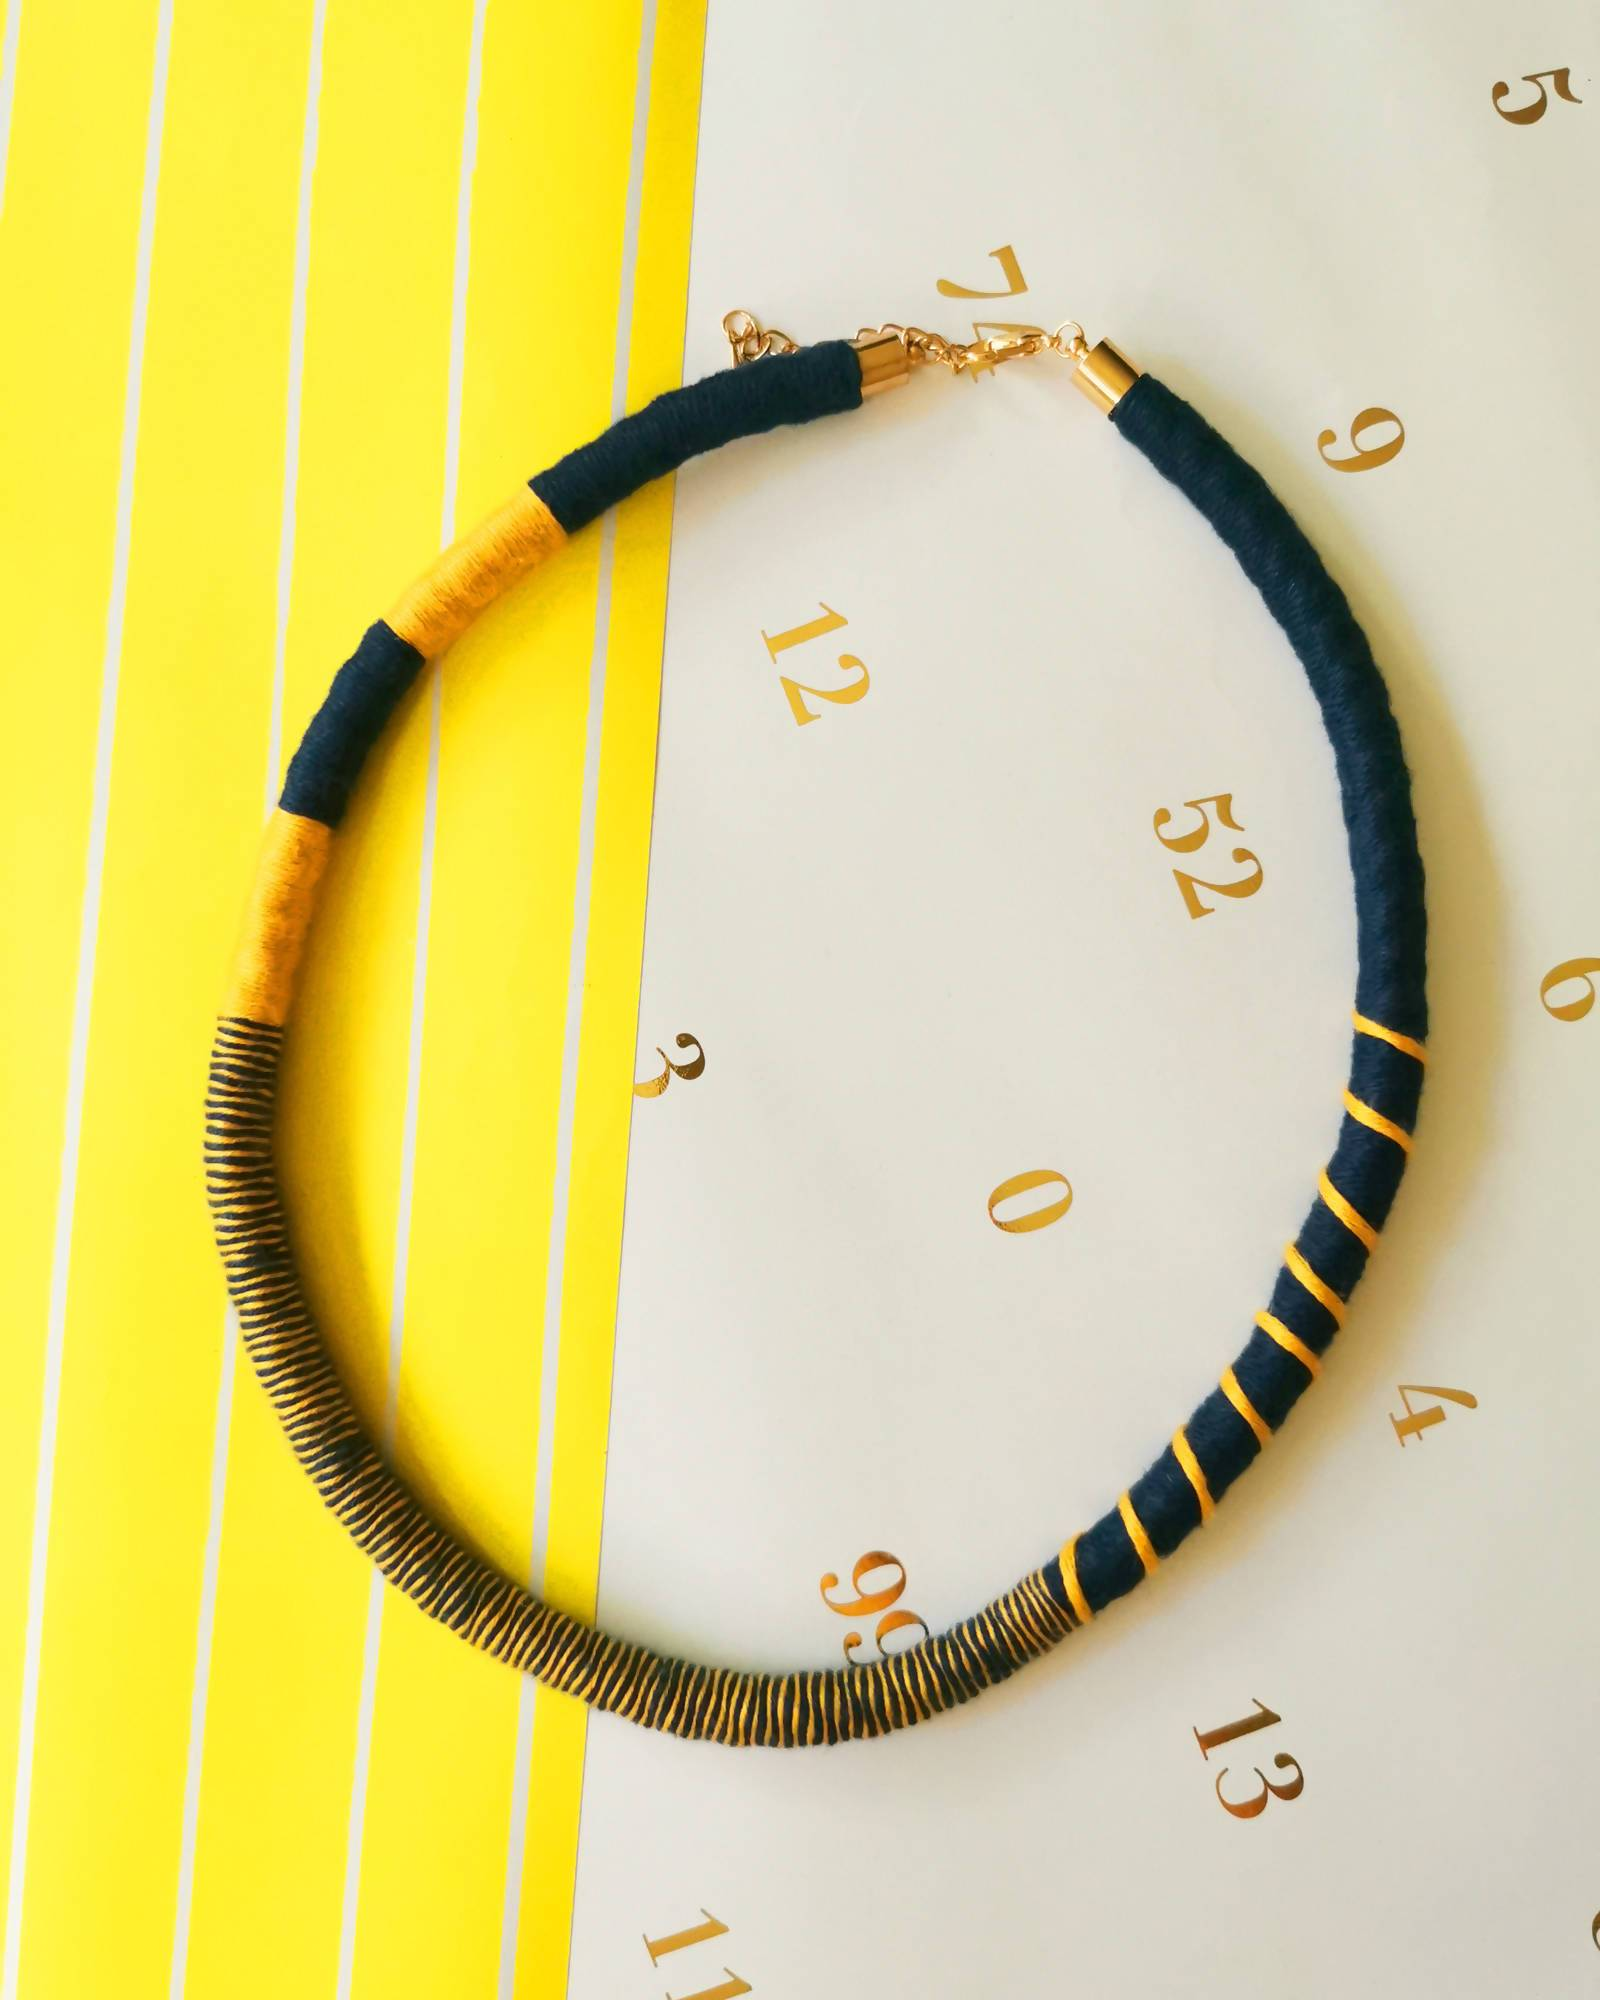 Tribeca Multi-wear Rope Necklace/Bracelet - Navy/Mustard - Necklaces - Playtime Rebs Studio - Naiise